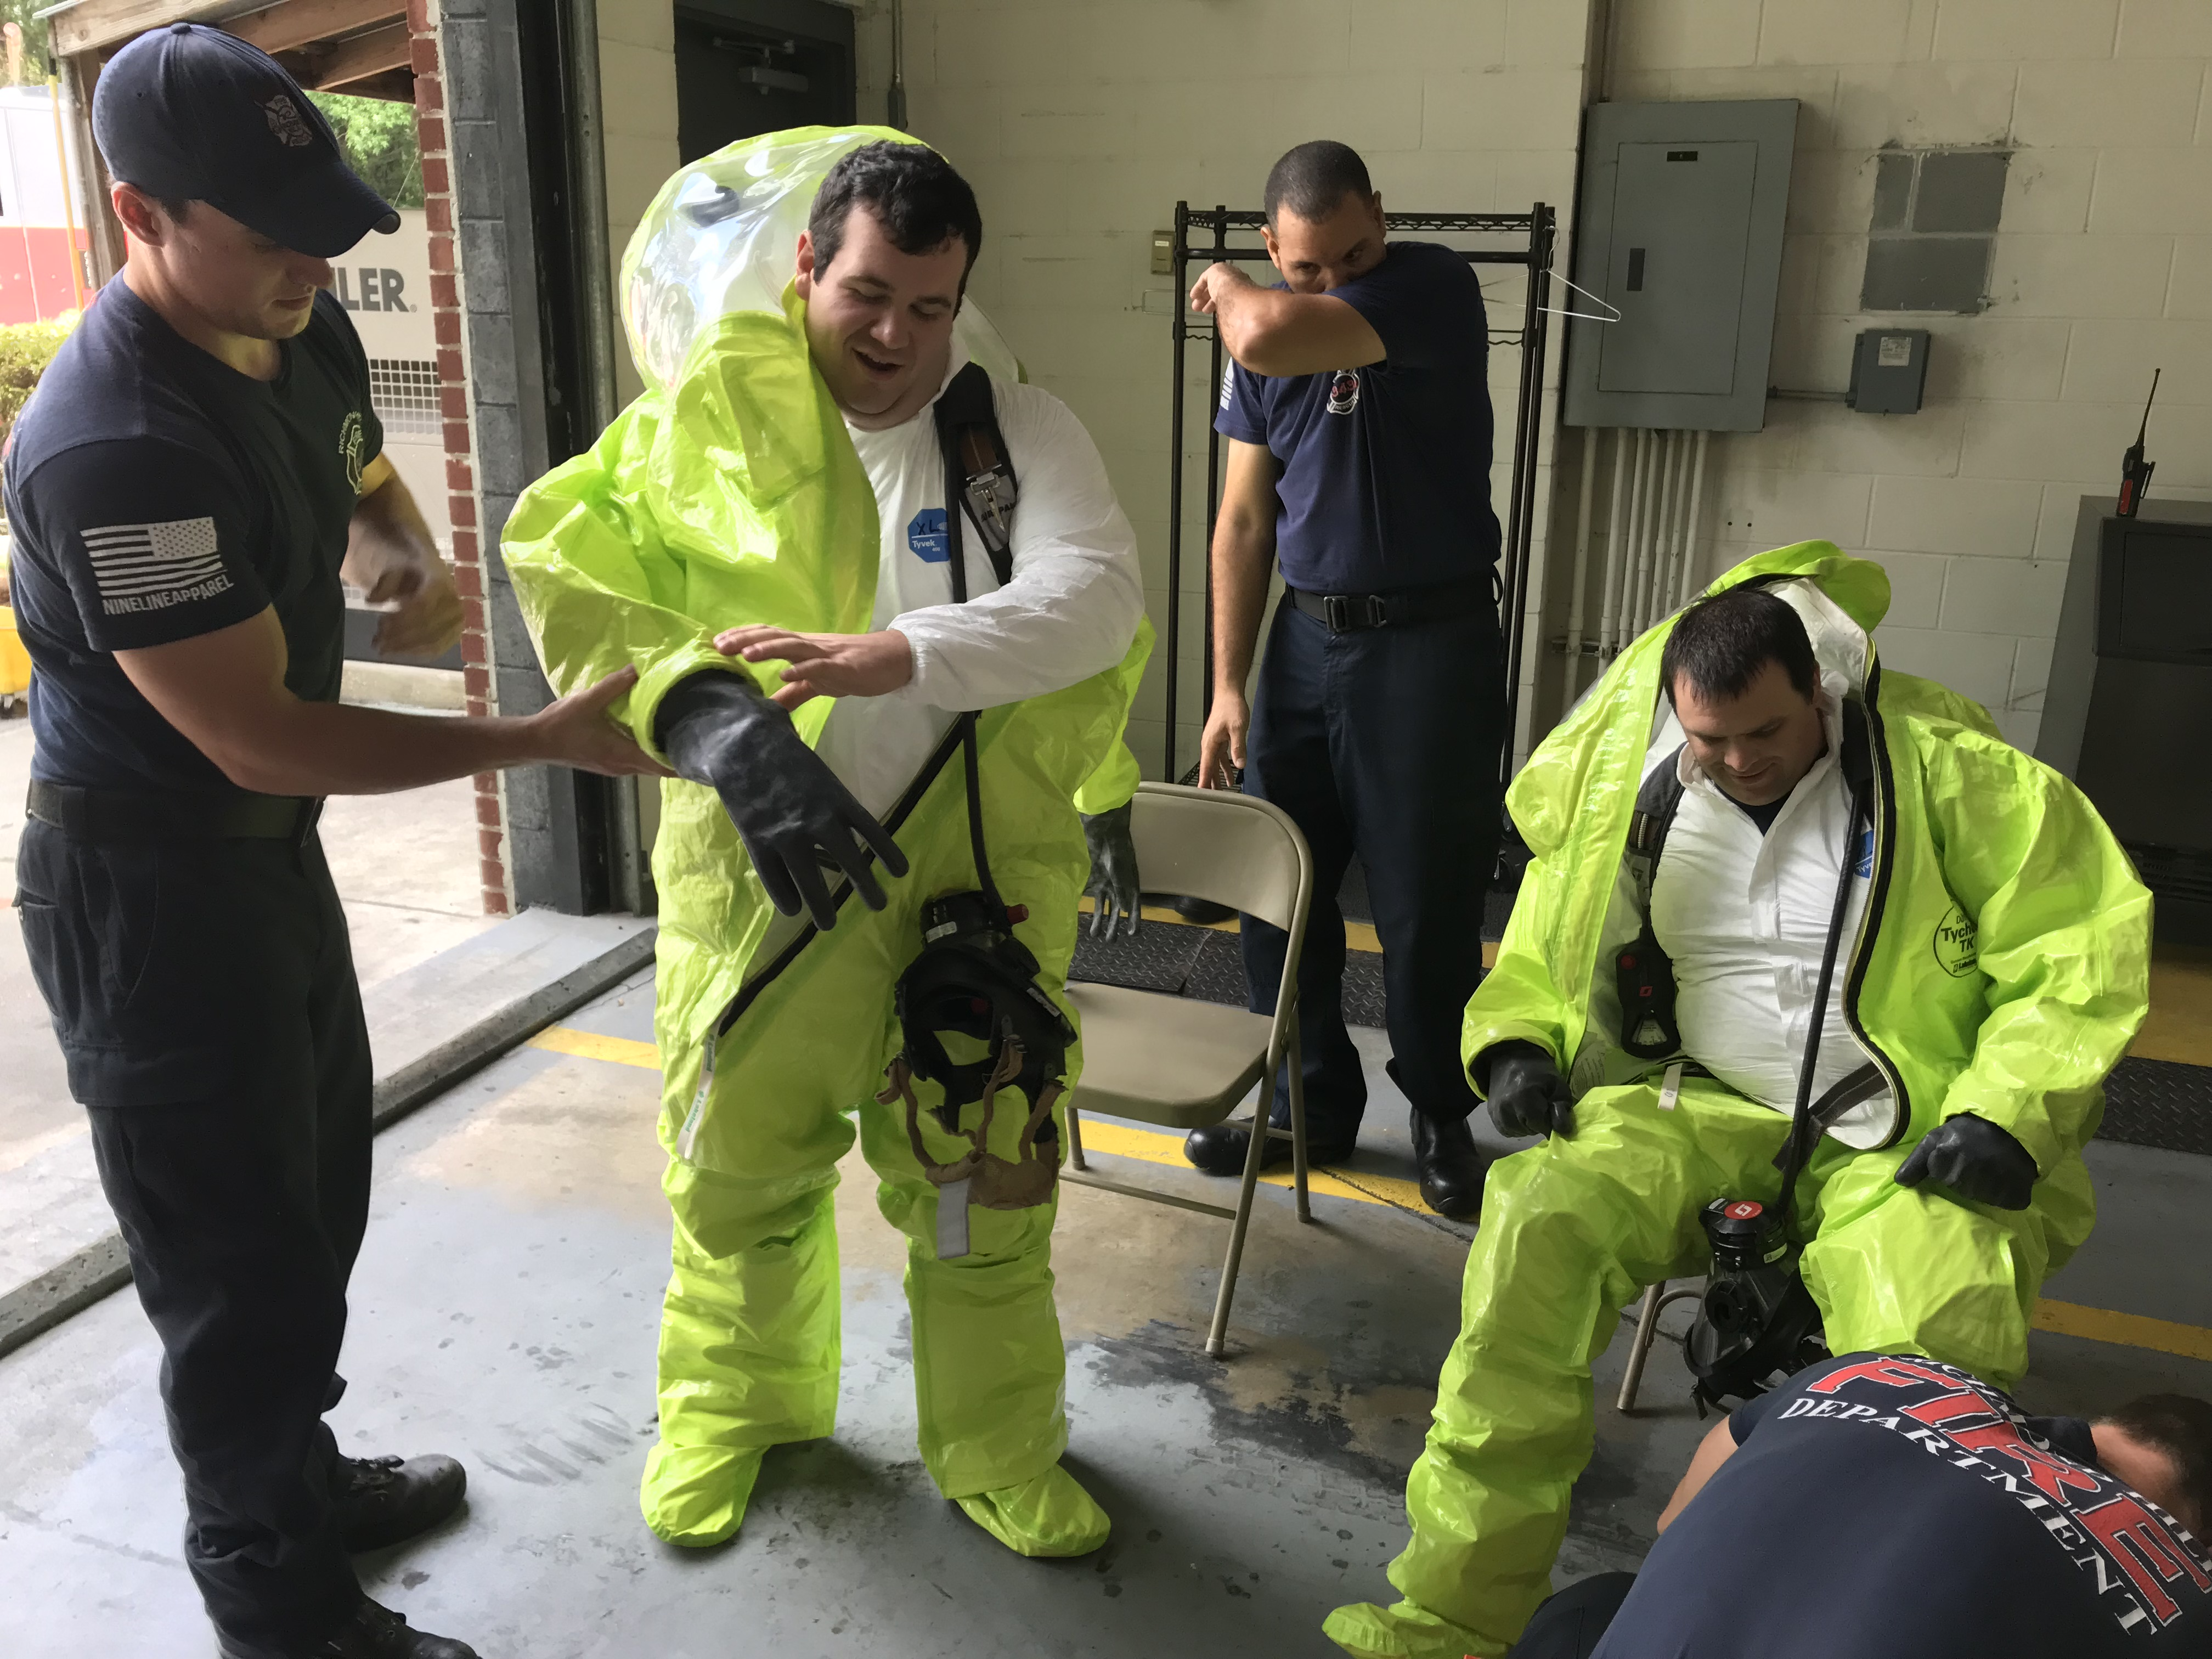 Two firefighters putting on hazmat suits